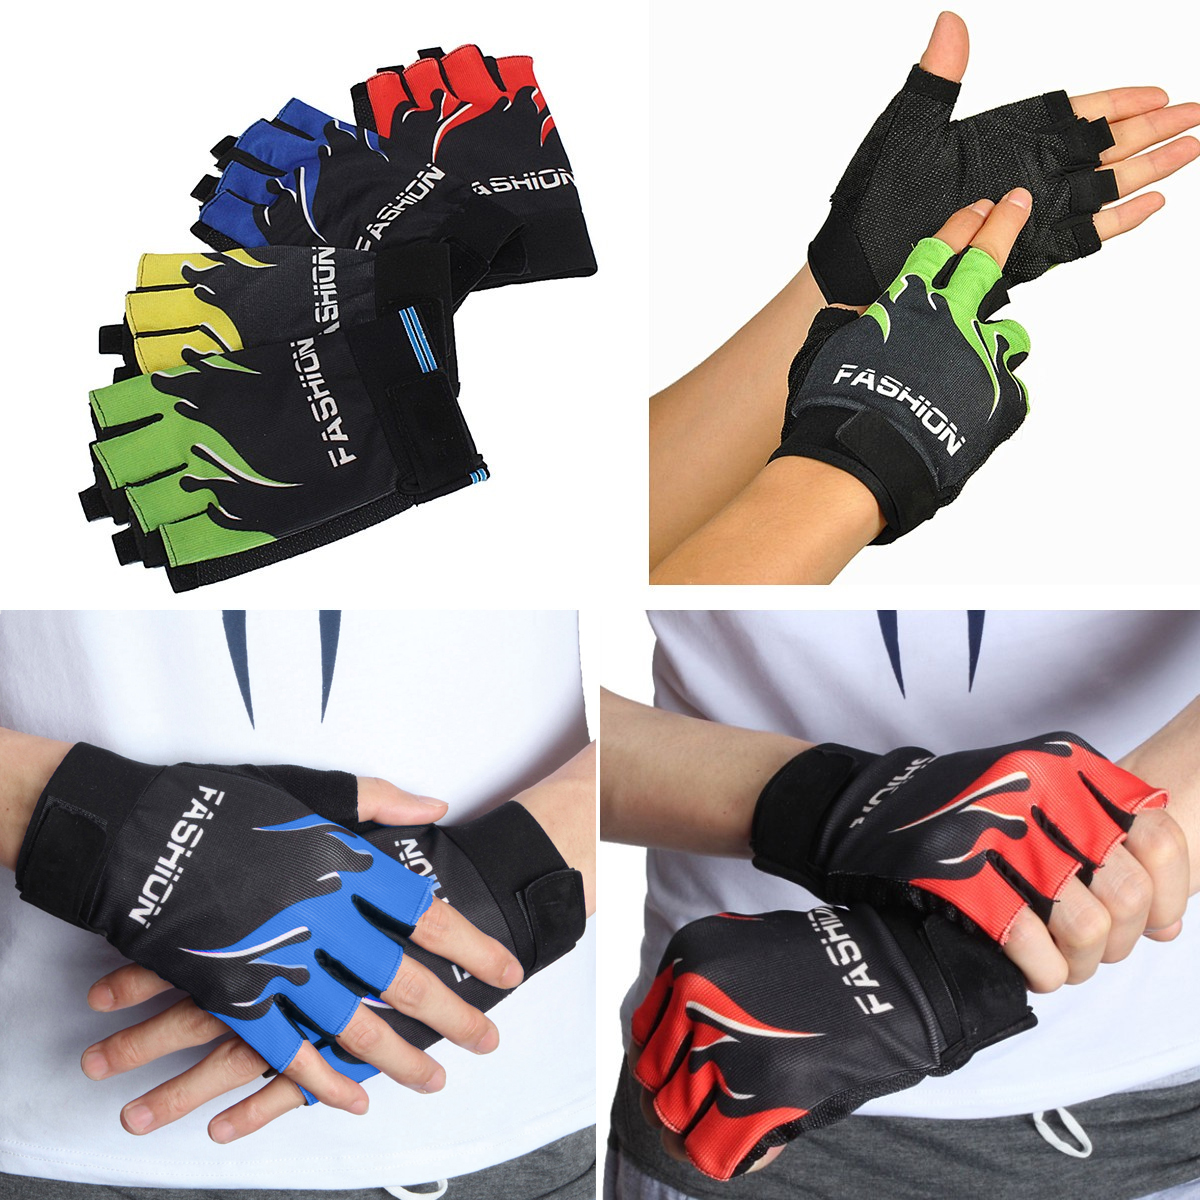 1 Pair Gloves Half-finger Fingerless Outdoor Sports Riding Bike Bicycle Cycling